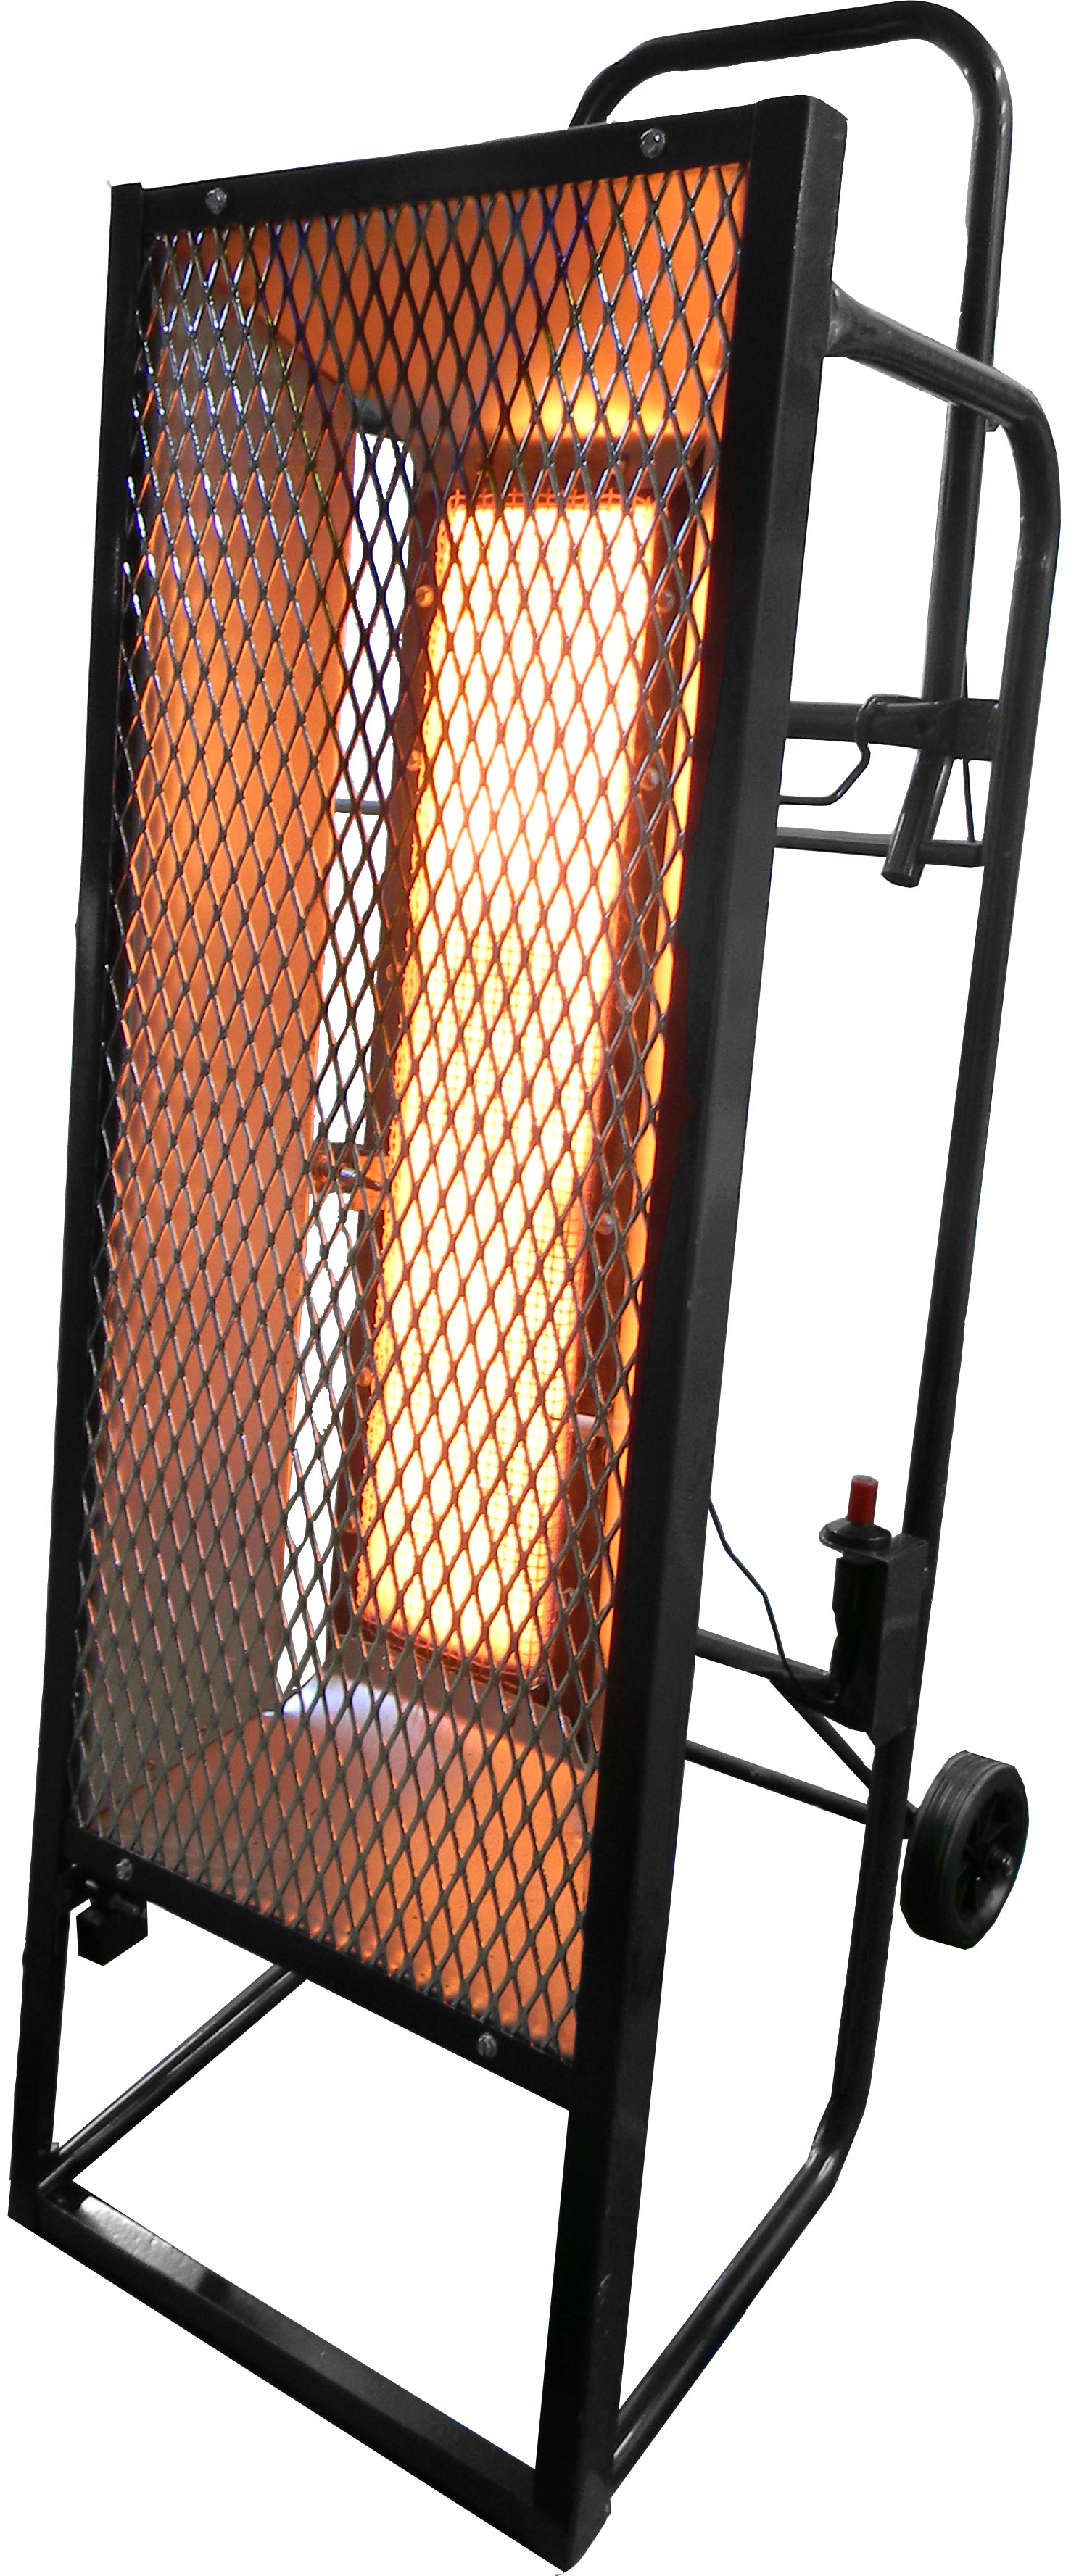 Are L. B. White propane heaters highly rated?